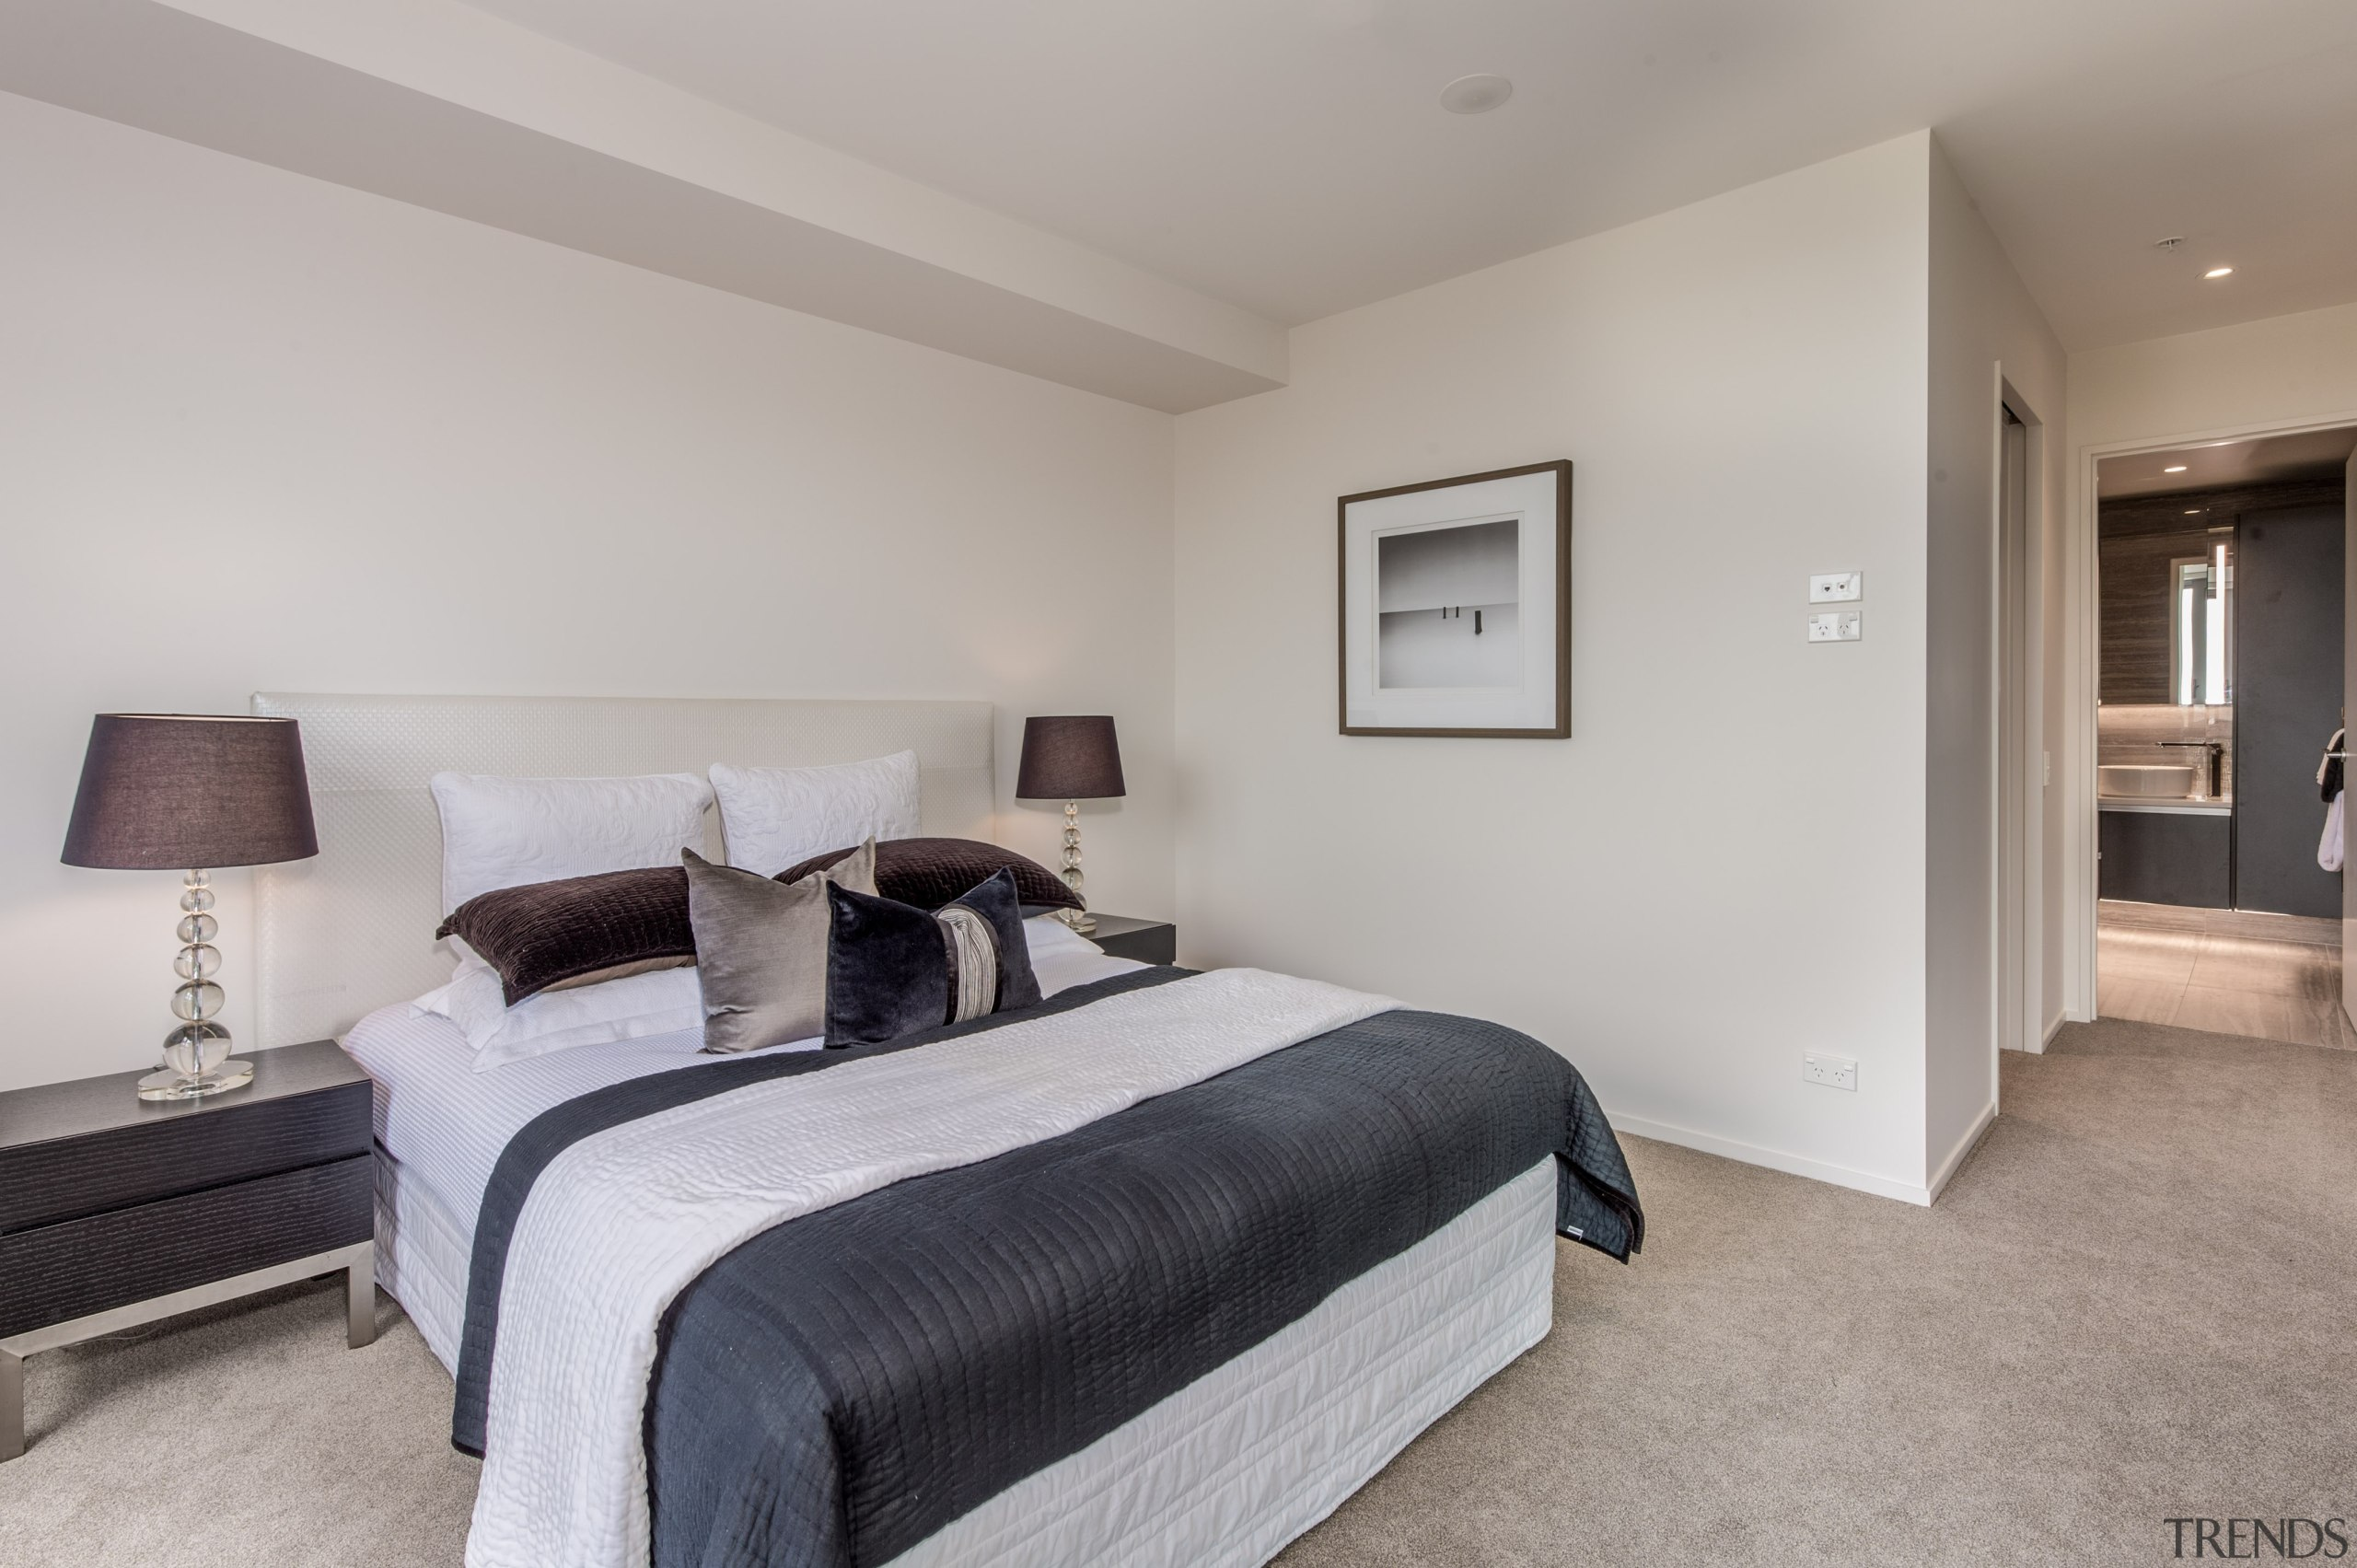 Master bedroom with ensuite - Master bedroom with bed frame, bedroom, ceiling, estate, floor, flooring, home, interior design, property, real estate, room, wall, gray